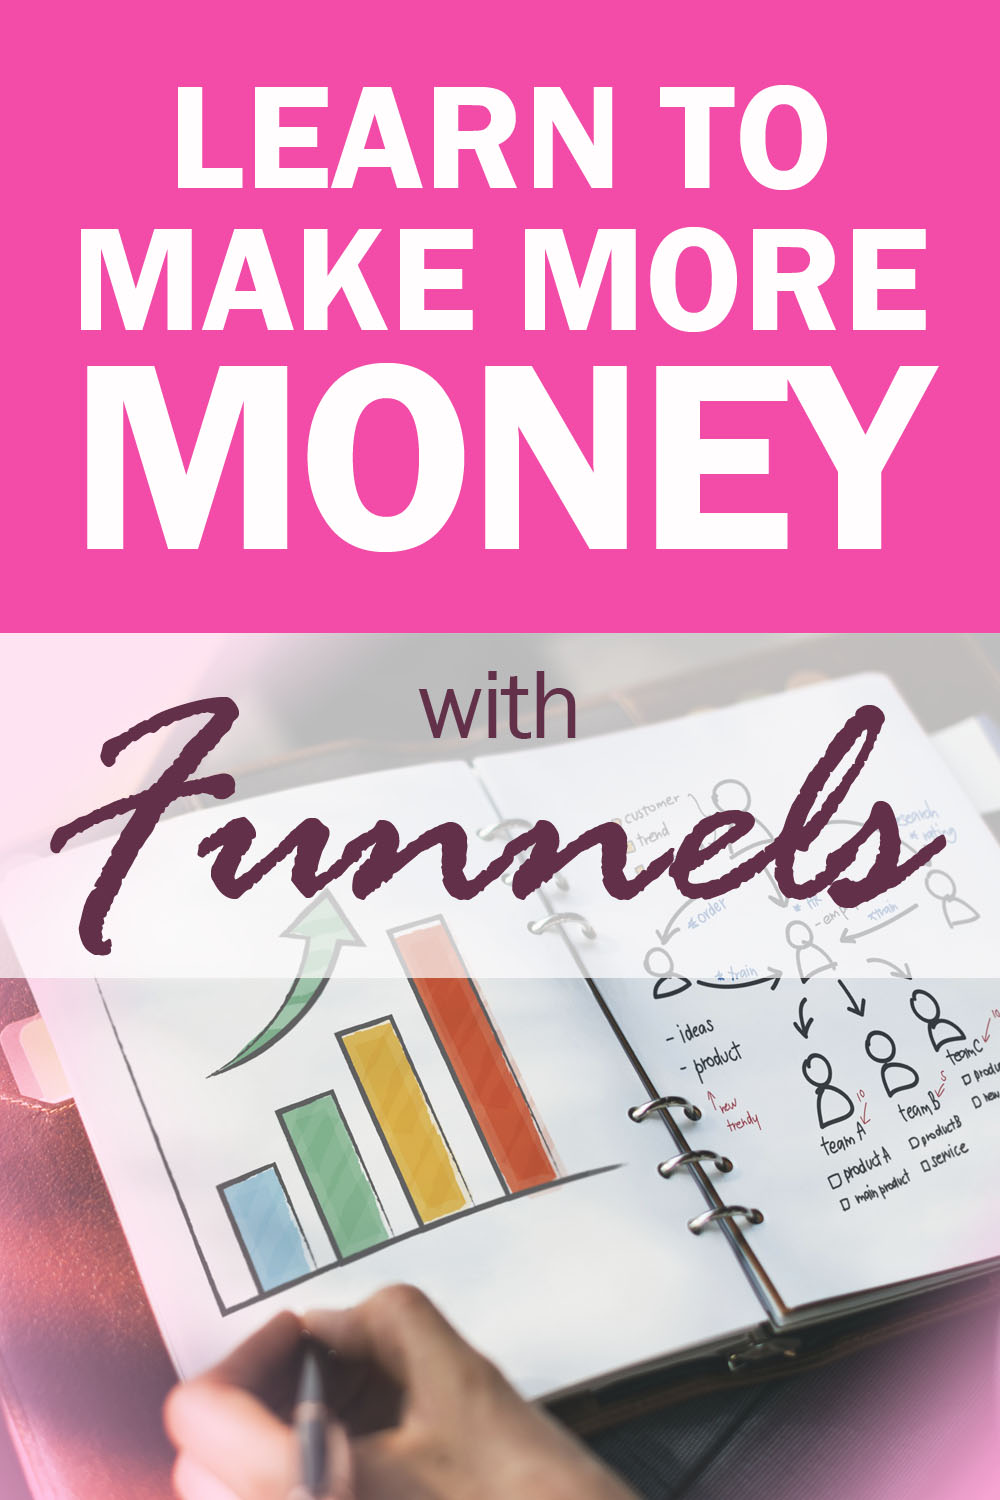 Learn to Make More Money With Funnels.jpg